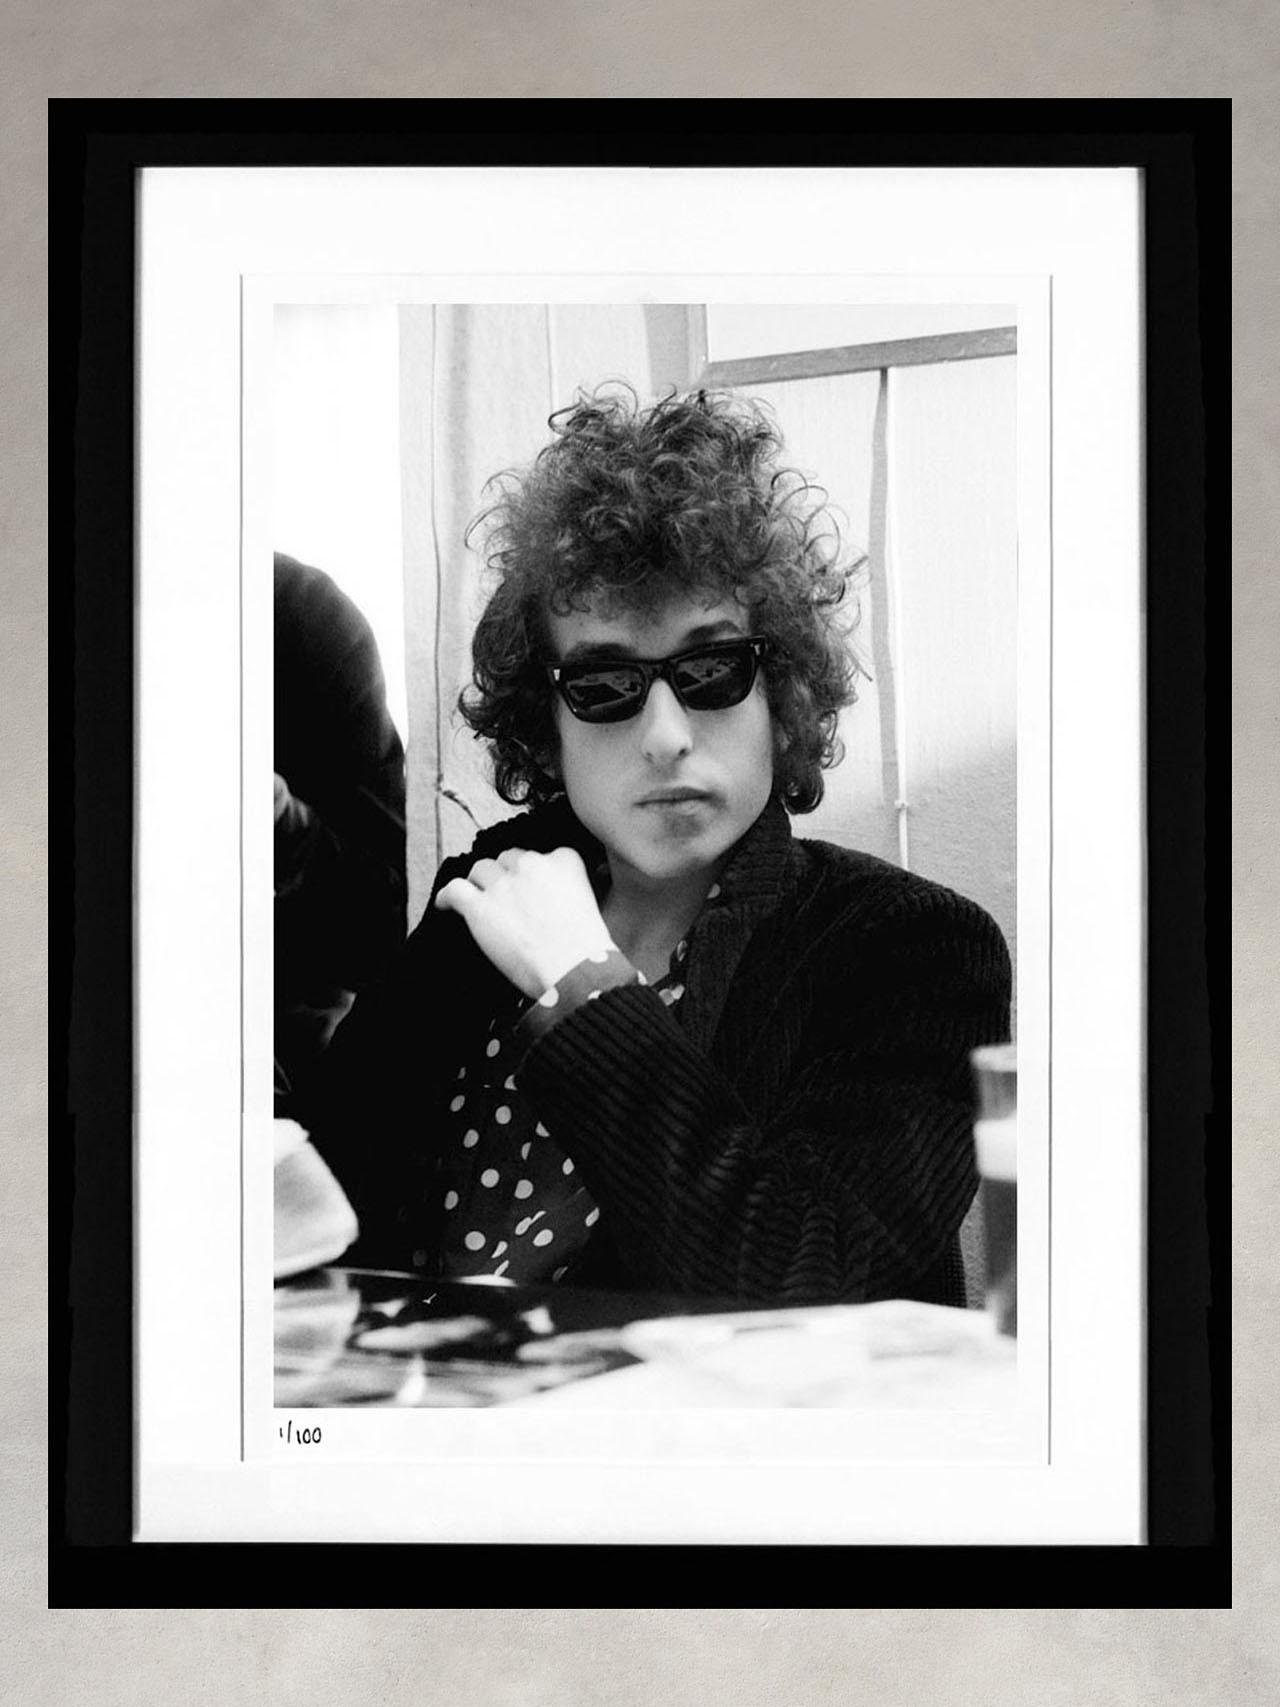 Bob Dylan by Charles Gatewood